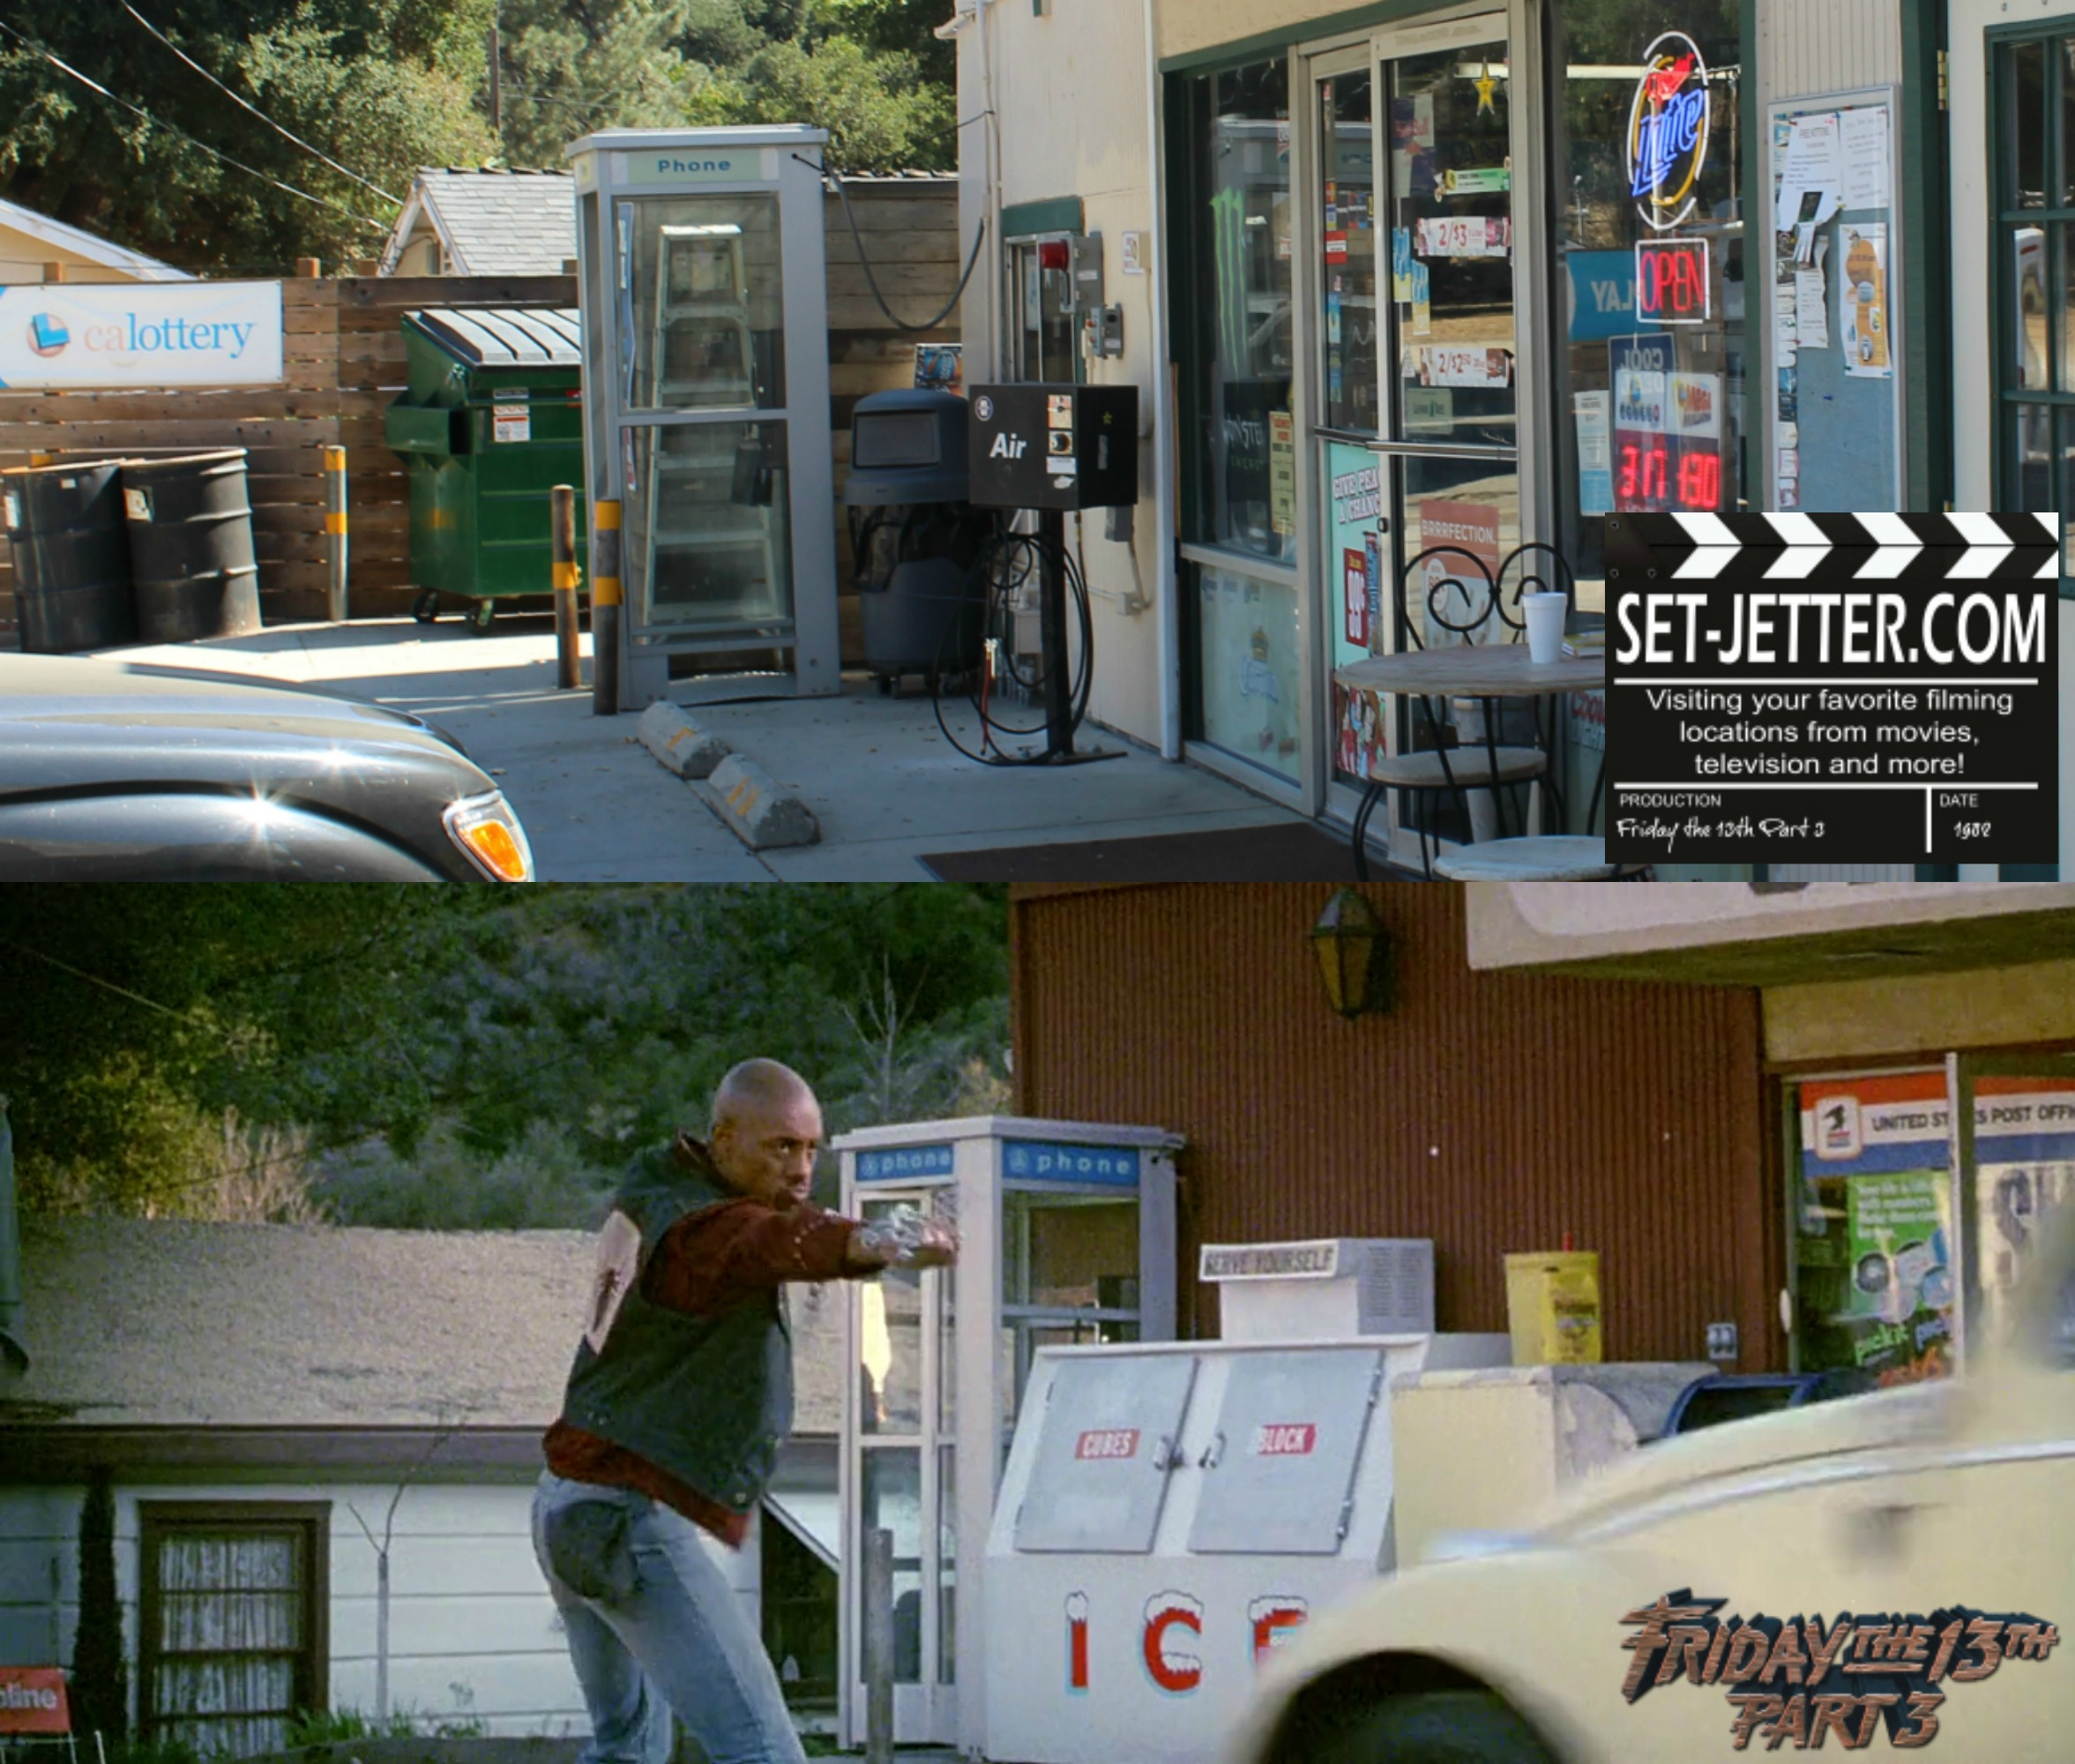 Friday the 13th Part 3 compairson 171.jpg